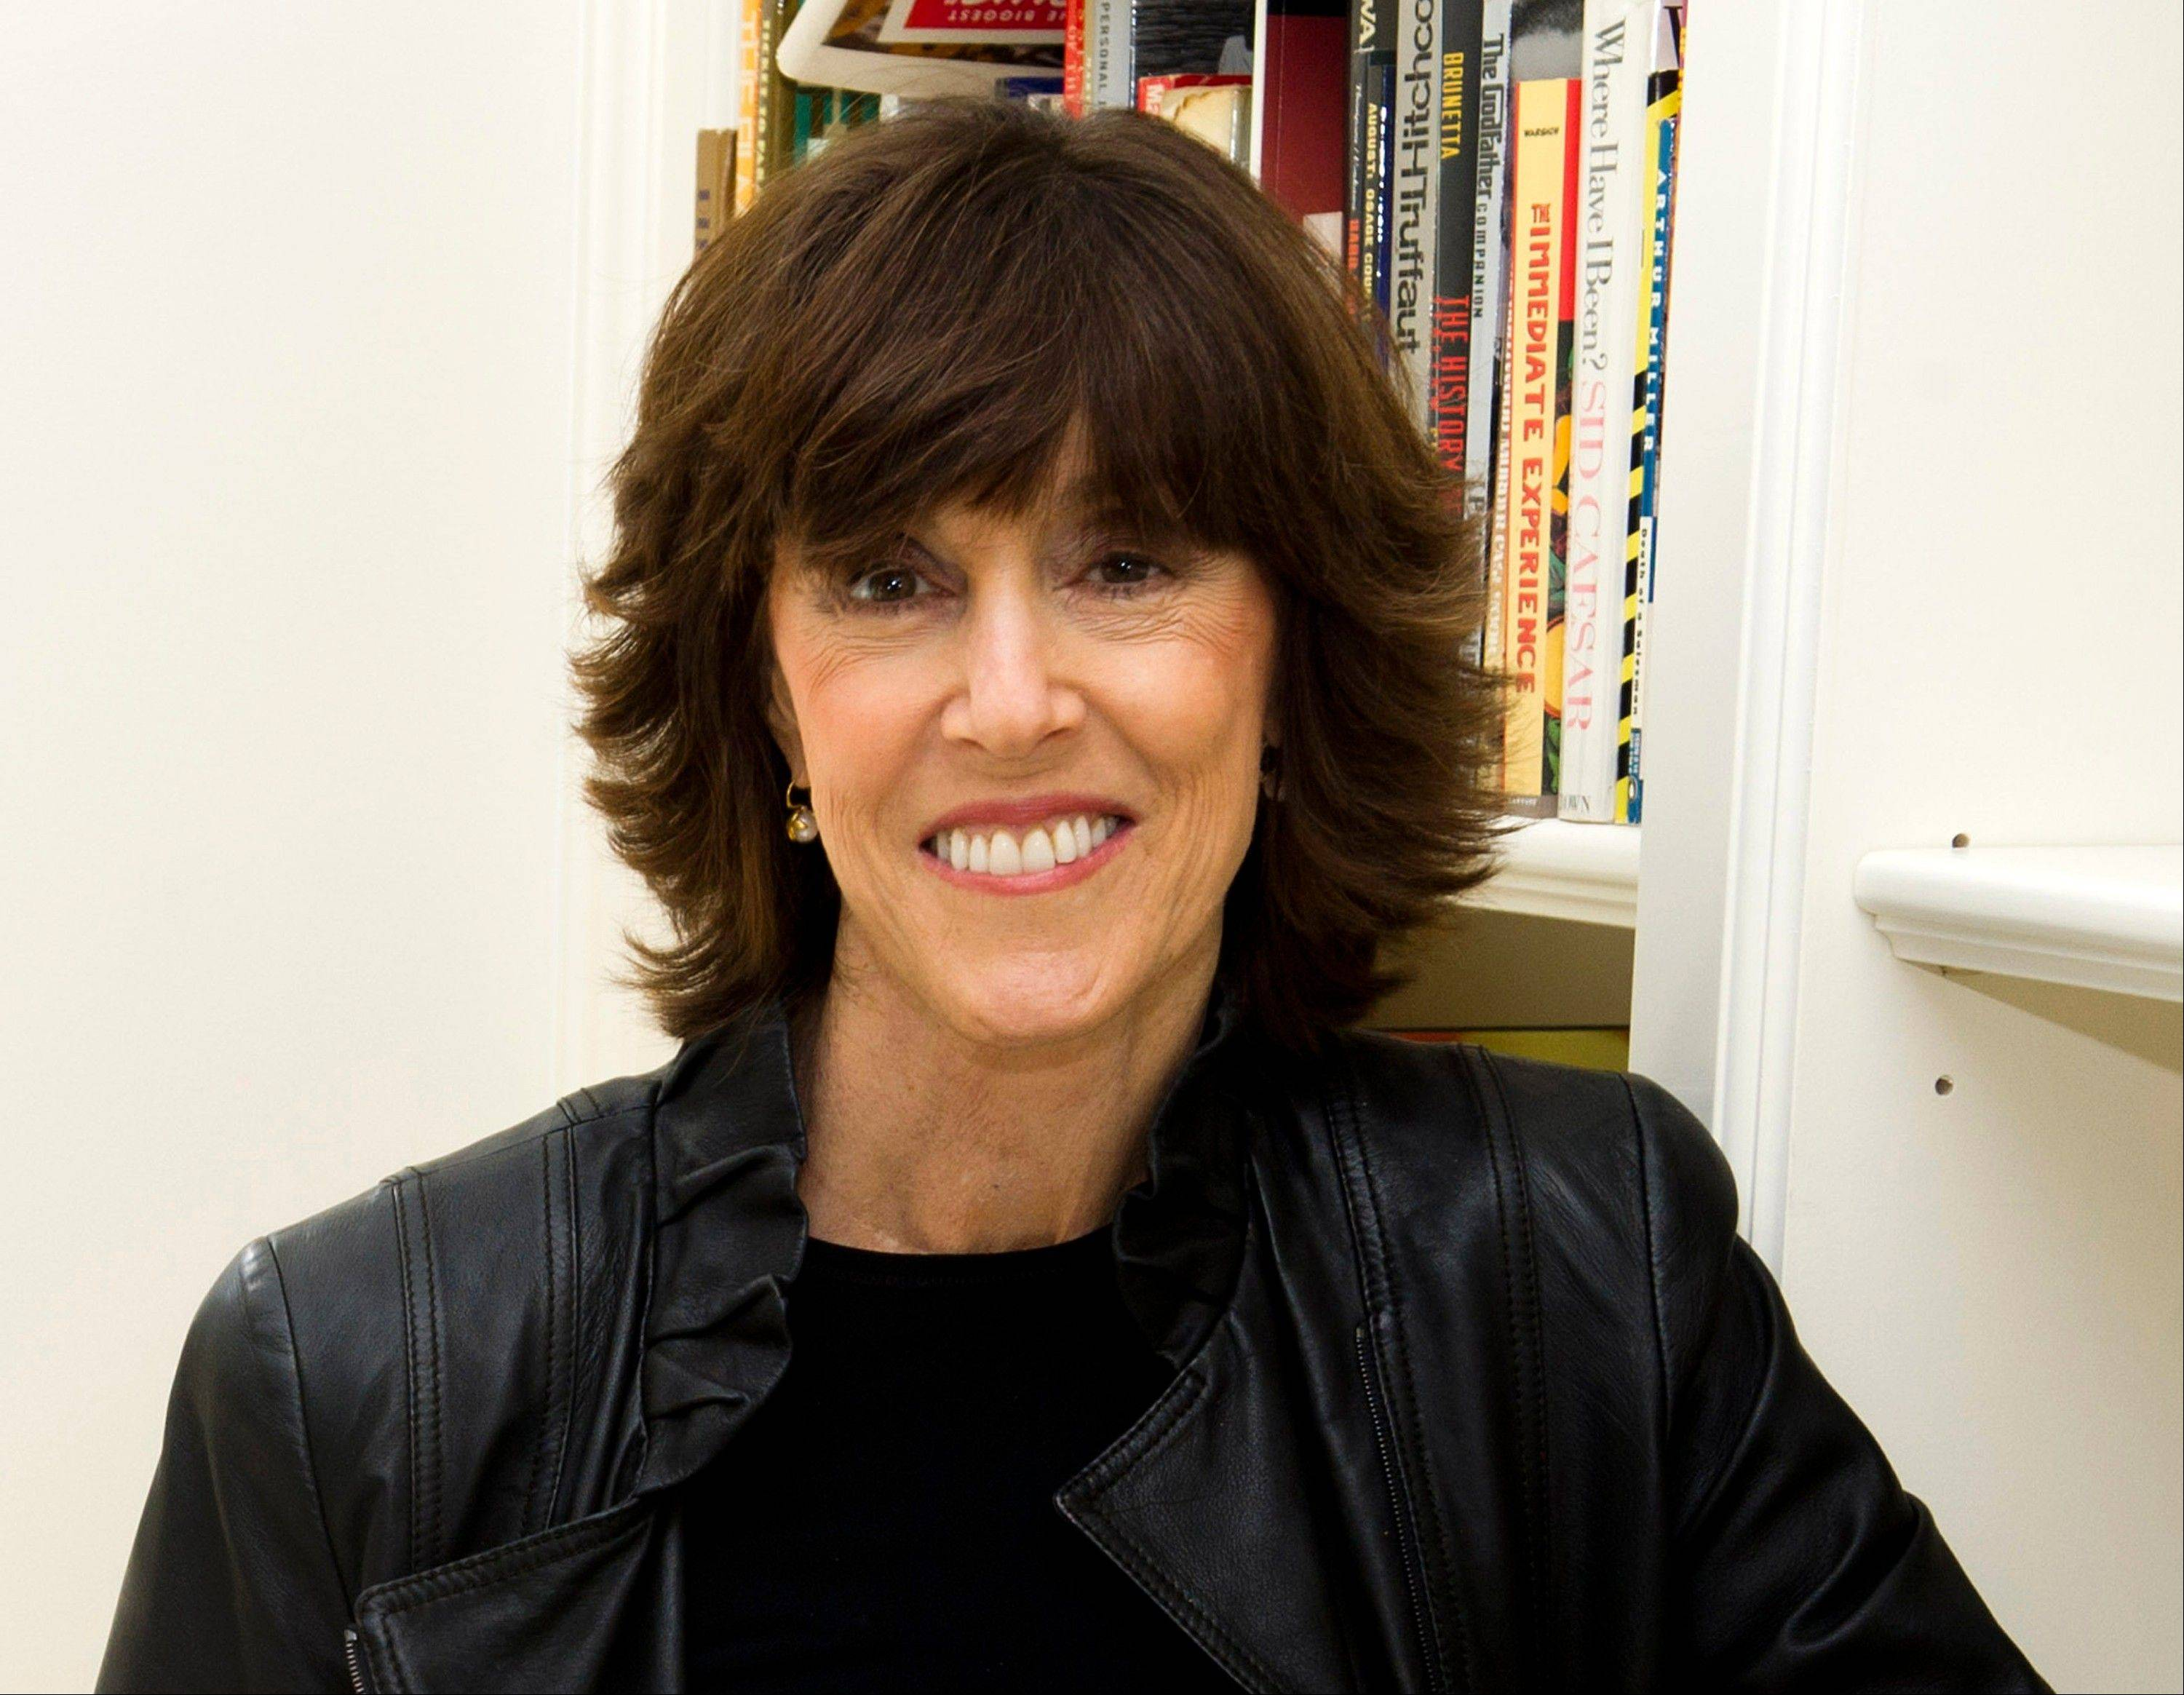 Oscar-nominated filmmaker and author Nora Ephron died on Tuesday of leukemia. She was 71.